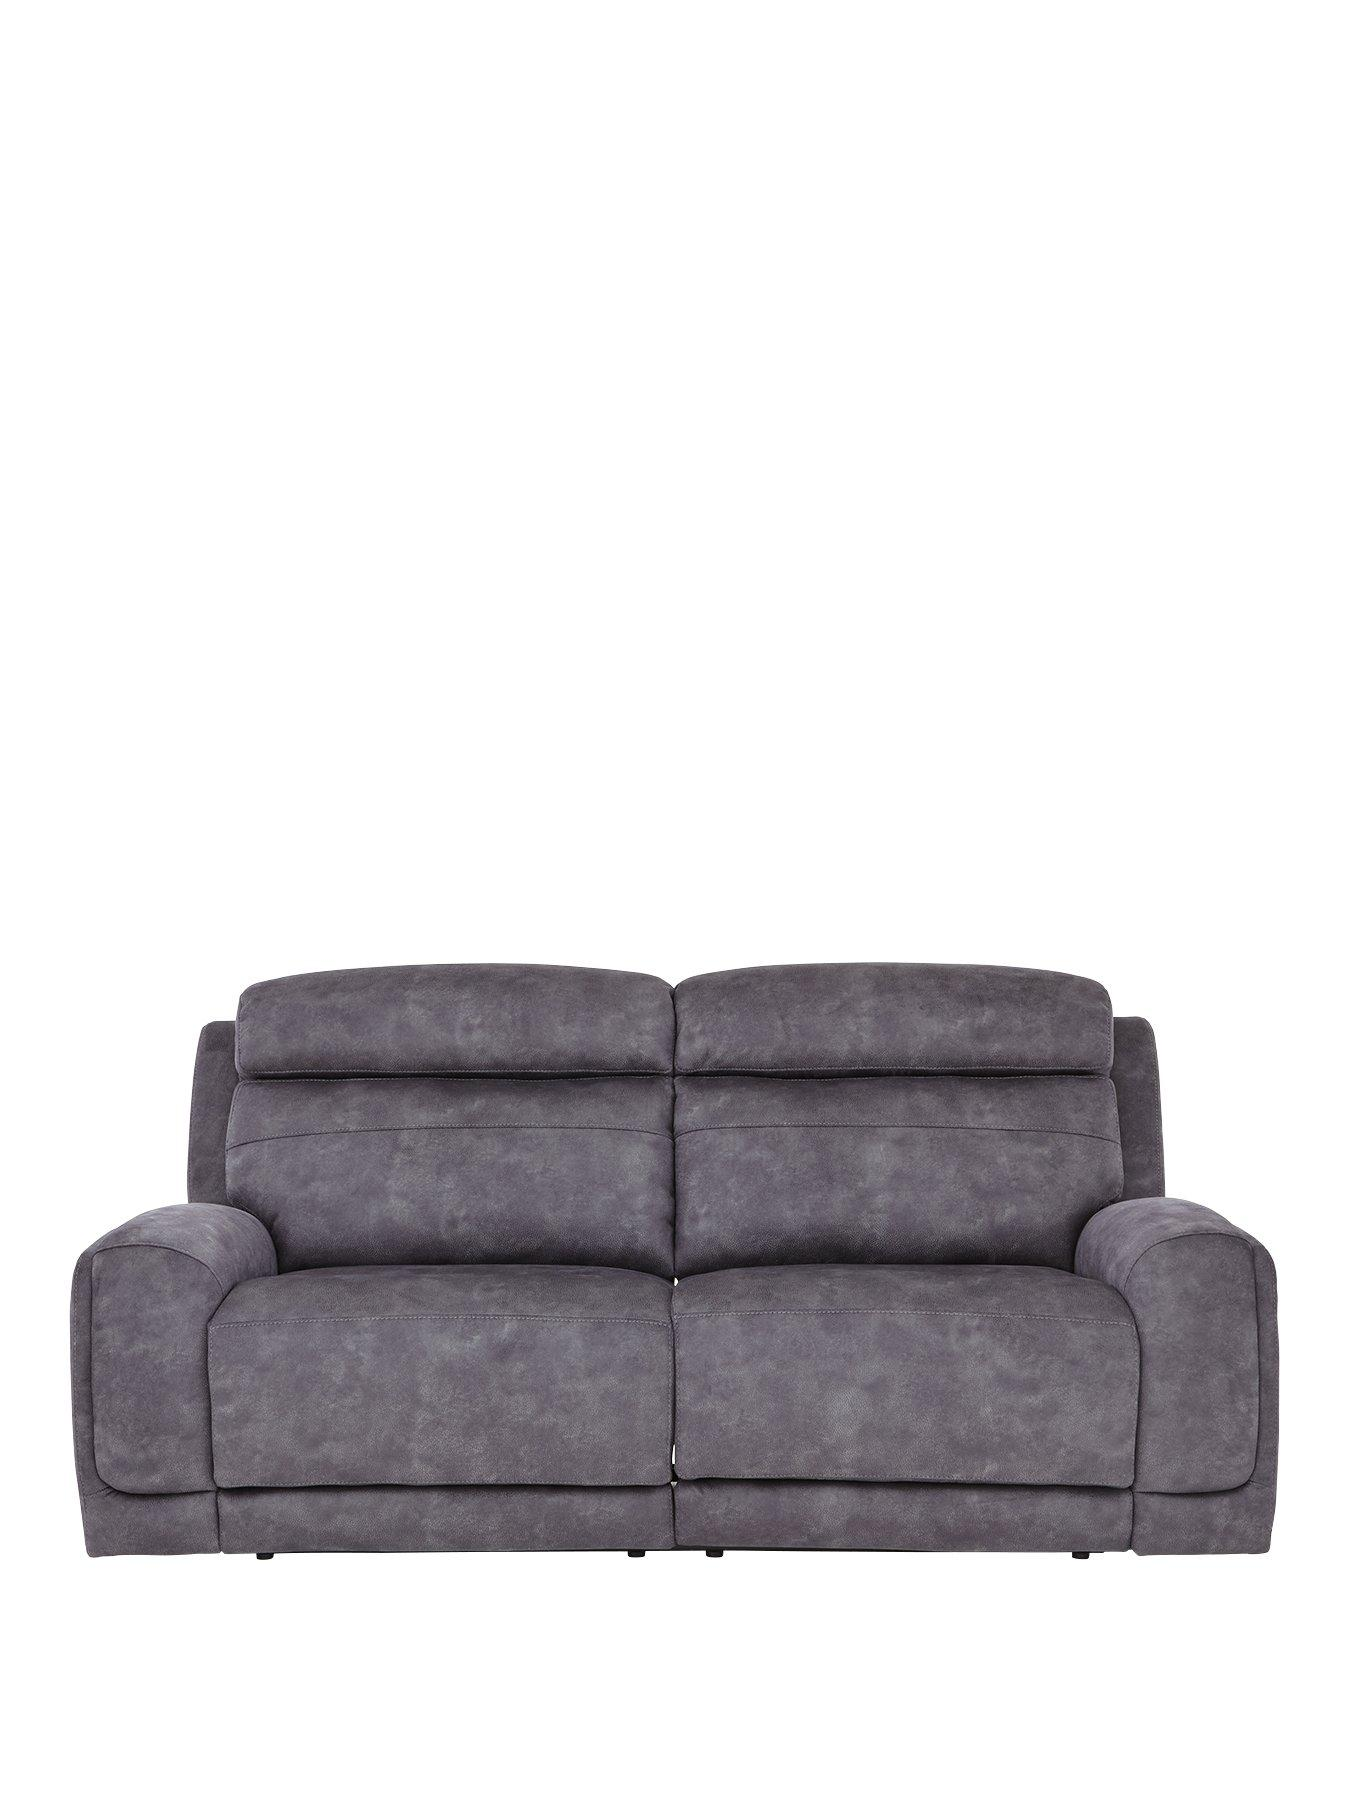 Reclining Sofa Fabric 3 Seater Brown Fabric Reclining Sofa Monroe